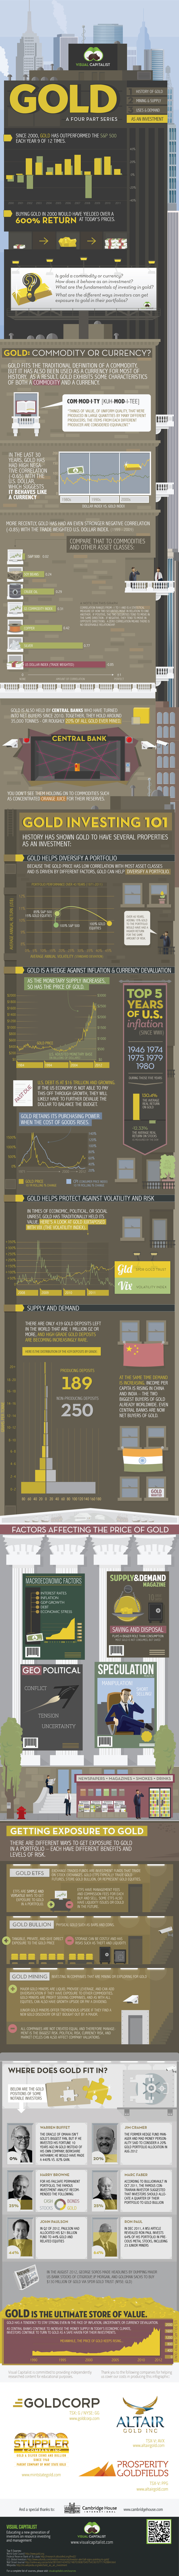 fondamentaux de l'or / infographie en 4 parties  Gold-investment-infographic